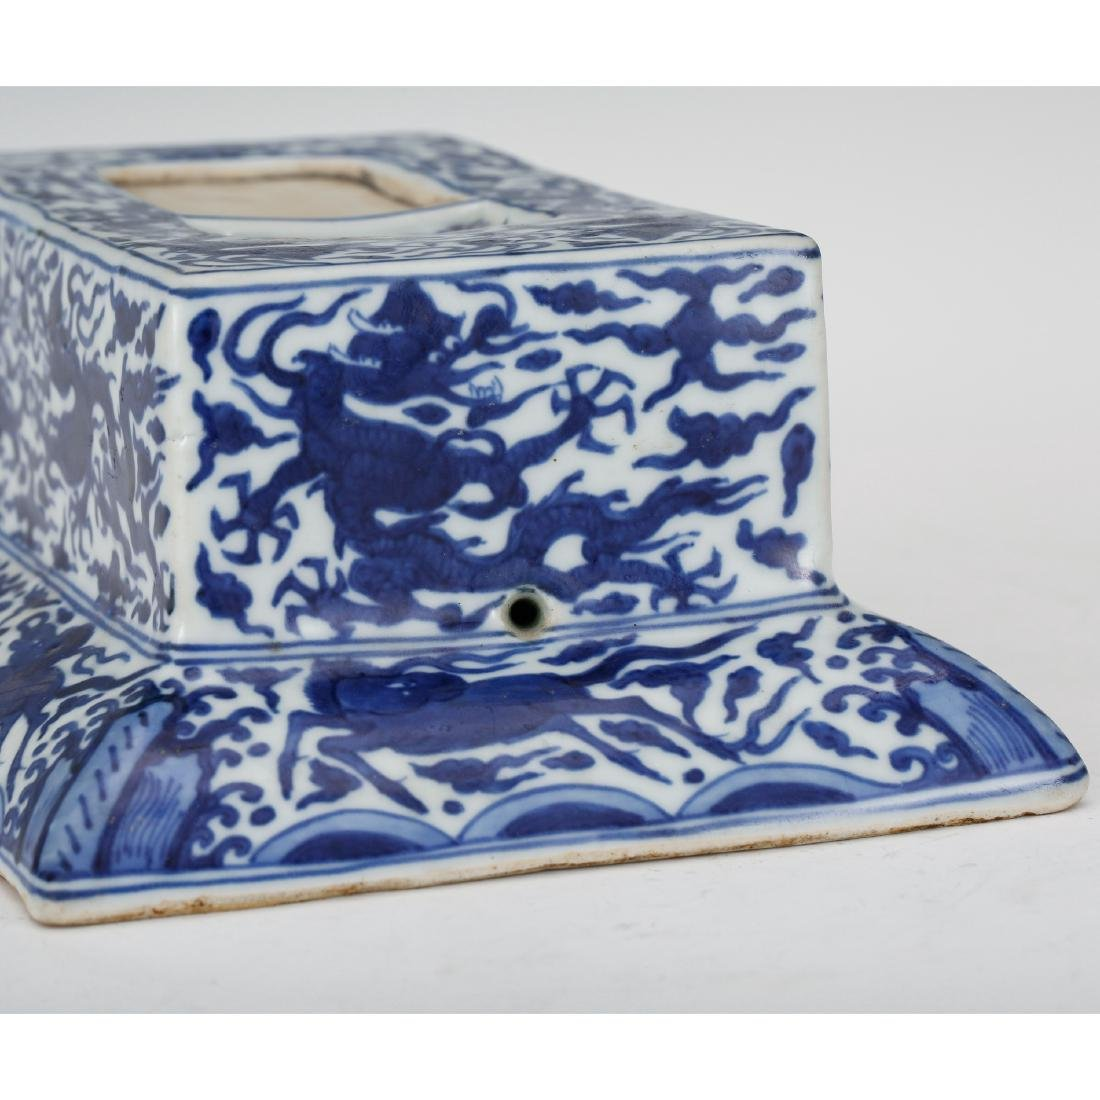 CHINESE BLUE AND WHITE PORCELAIN INK PALETTE - 7